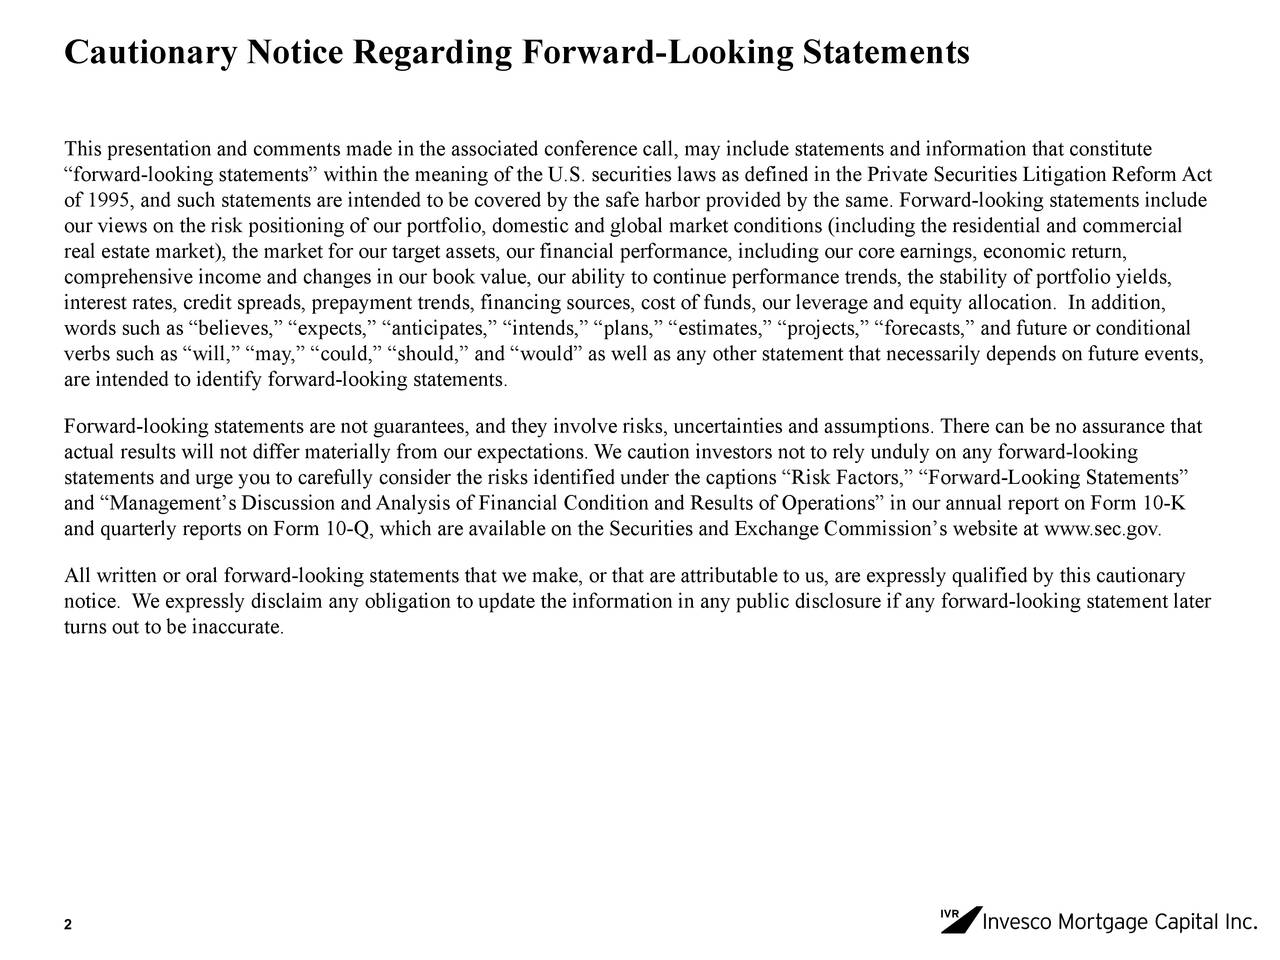 """This presentation and comments made in the associated conference call, may include statements and information that constitute """"forward-looking statements"""" within the meaning of the U.S. securities laws as defined in the Private Securities Litigation ReformAct of 1995, and such statements are intended to be covered by the safe harbor provided by the same. Forward-looking statements include our views on the risk positioning of our portfolio, domestic and global market conditions (including the residential and commercial real estate market), the market for our target assets, our financial performance, including our core earnings, economic return, comprehensive income and changes in our book value, our ability to continue performance trends, the stability of portfolio yields, interest rates, credit spreads, prepayment trends, financing sources, cost of funds, our leverage and equity allocation. In addition, words such as """"believes,"""" """"expects,"""" """"anticipates,"""" """"intends,"""" """"plans,"""" """"estimates,"""" """"projects,"""" """"forecasts,"""" and future or conditional verbs such as """"will,"""" """"may,"""" """"could,"""" """"should,"""" and """"would"""" as well as any other statement that necessarily depends on future events, are intended to identify forward-looking statements. Forward-looking statements are not guarantees, and they involve risks, uncertainties and assumptions. There can be no assurance that actual results will not differ materially from our expectations. We caution investors not to rely unduly on any forward-looking statements and urge you to carefully consider the risks identified under the captions """"Risk Factors,"""" """"Forward-Looking Statements"""" and """"Management's Discussion and Analysis of Financial Condition and Results of Operations"""" in our annual report on Form 10-K and quarterly reports on Form 10-Q, which are available on the Securities and Exchange Commission's website at www.sec.gov. All written or oral forward-looking statements that we make, or that are attributable to us, are expressly qualified b"""